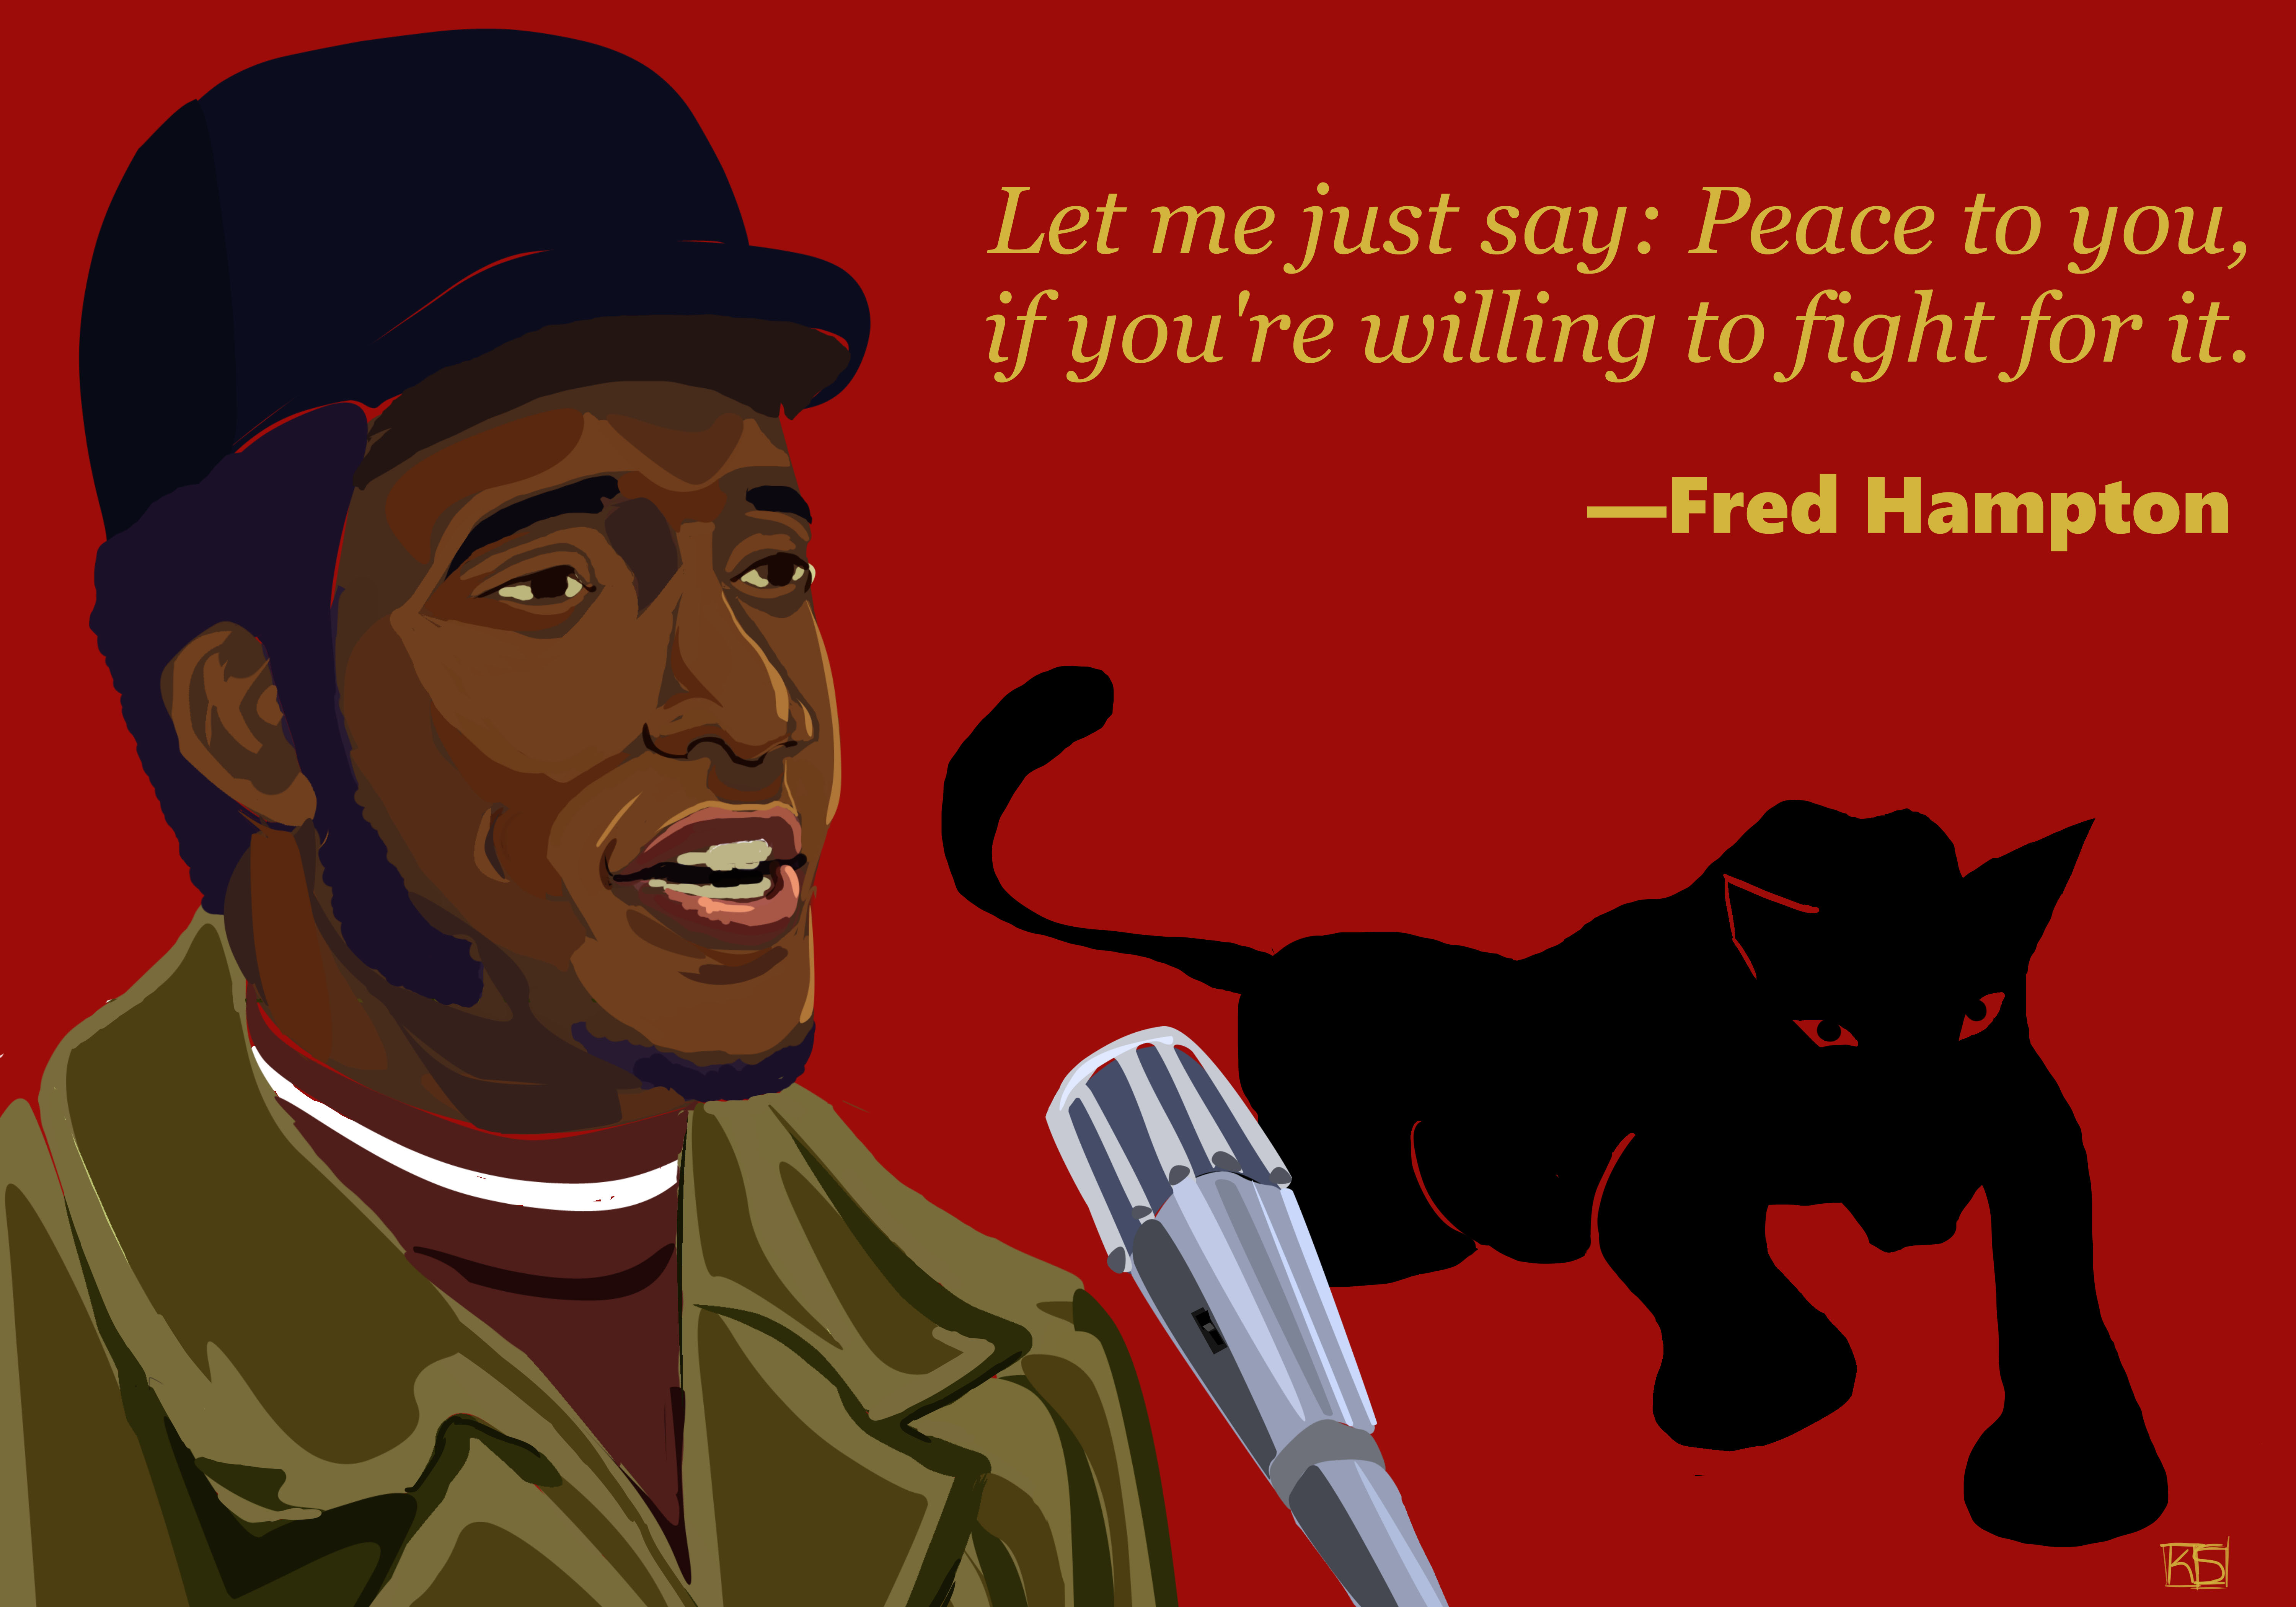 fred-hampton2_CW.jpg?time=1601340047